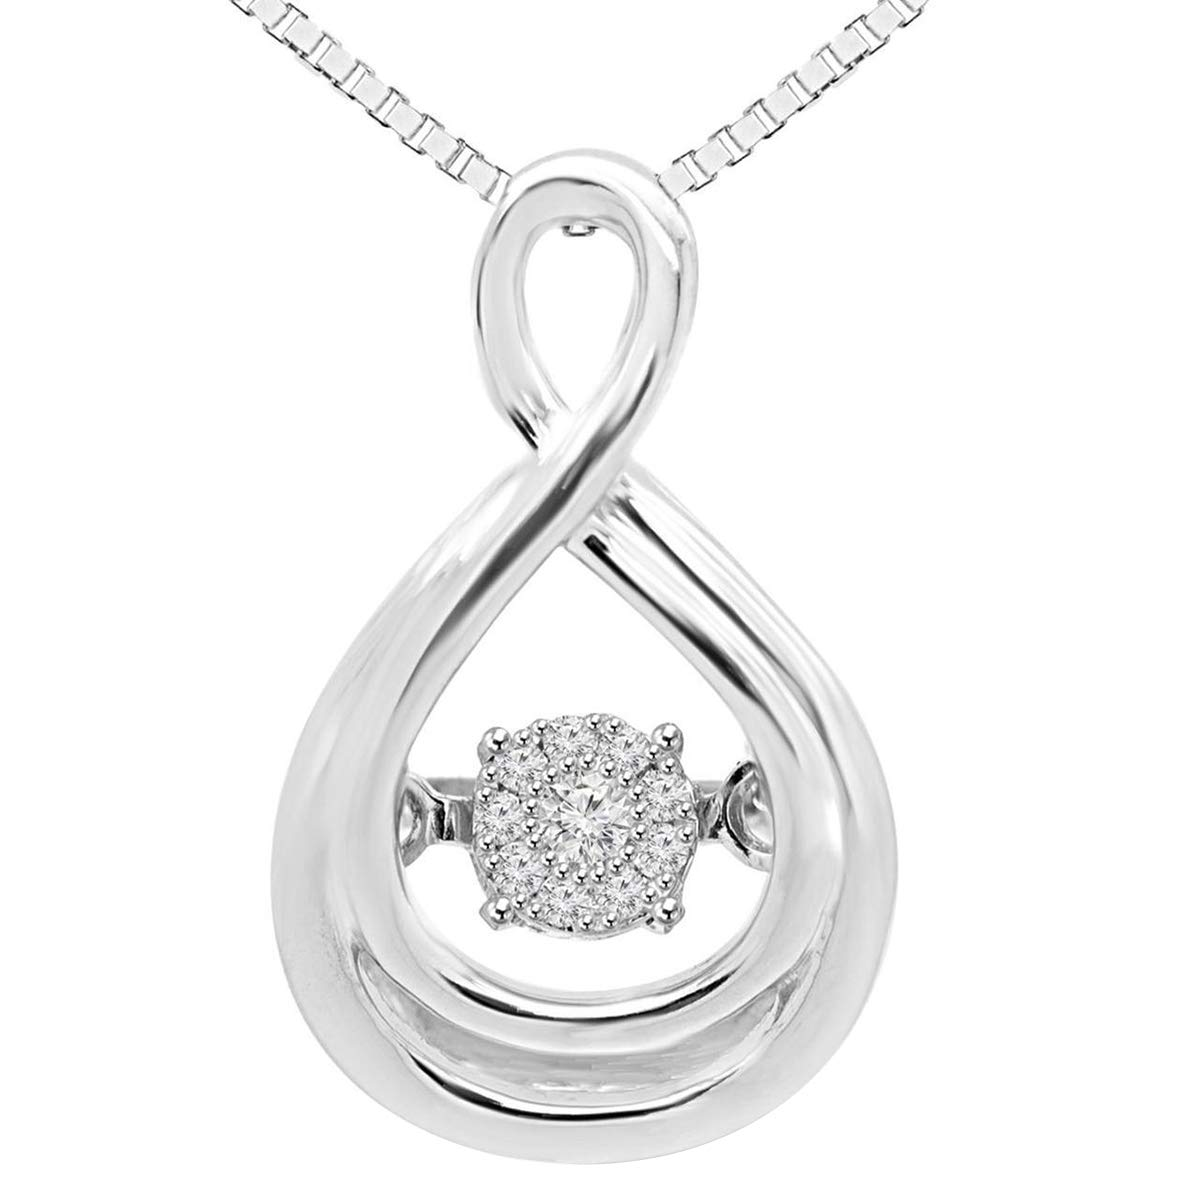 10K White Gold 0.15 Ct Round Cut Simulated Diamond Accents Infinity Pendant With 18 Chain .925 Silver